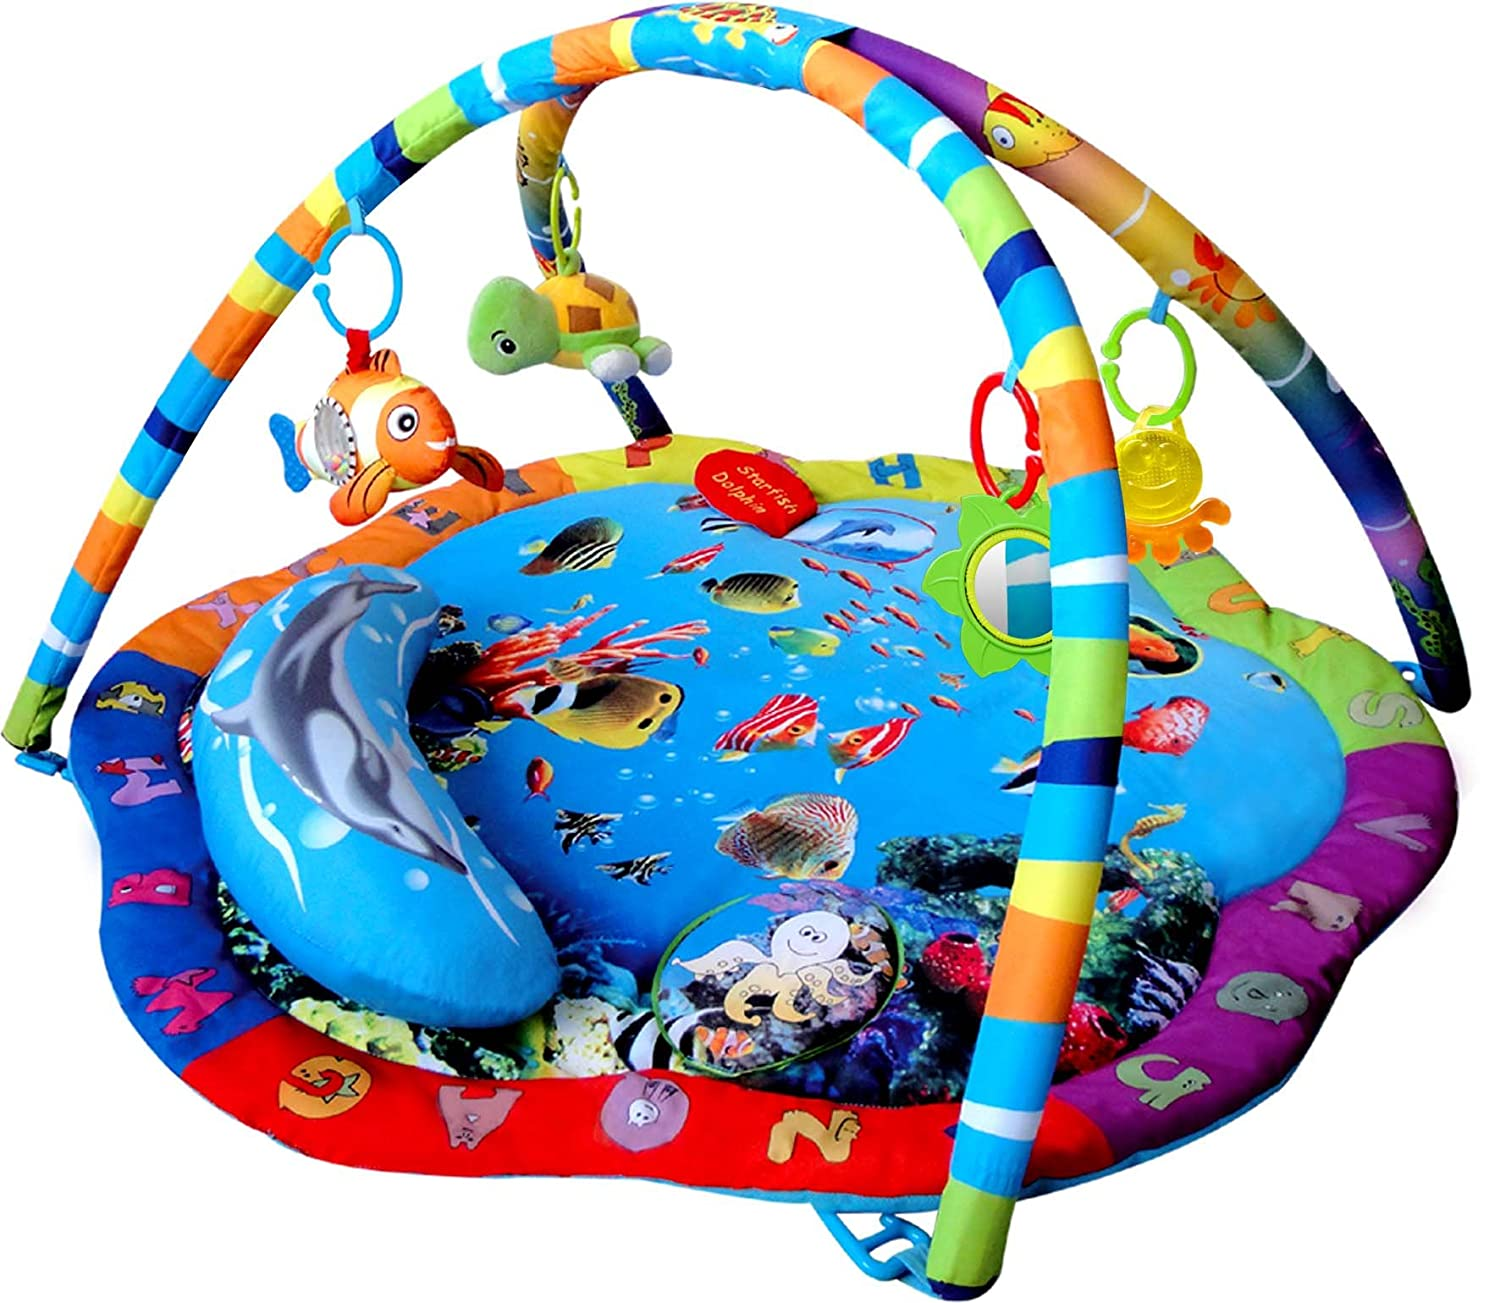 Baby Playmat Play Gym Musical Activity Gym stunning Ocean